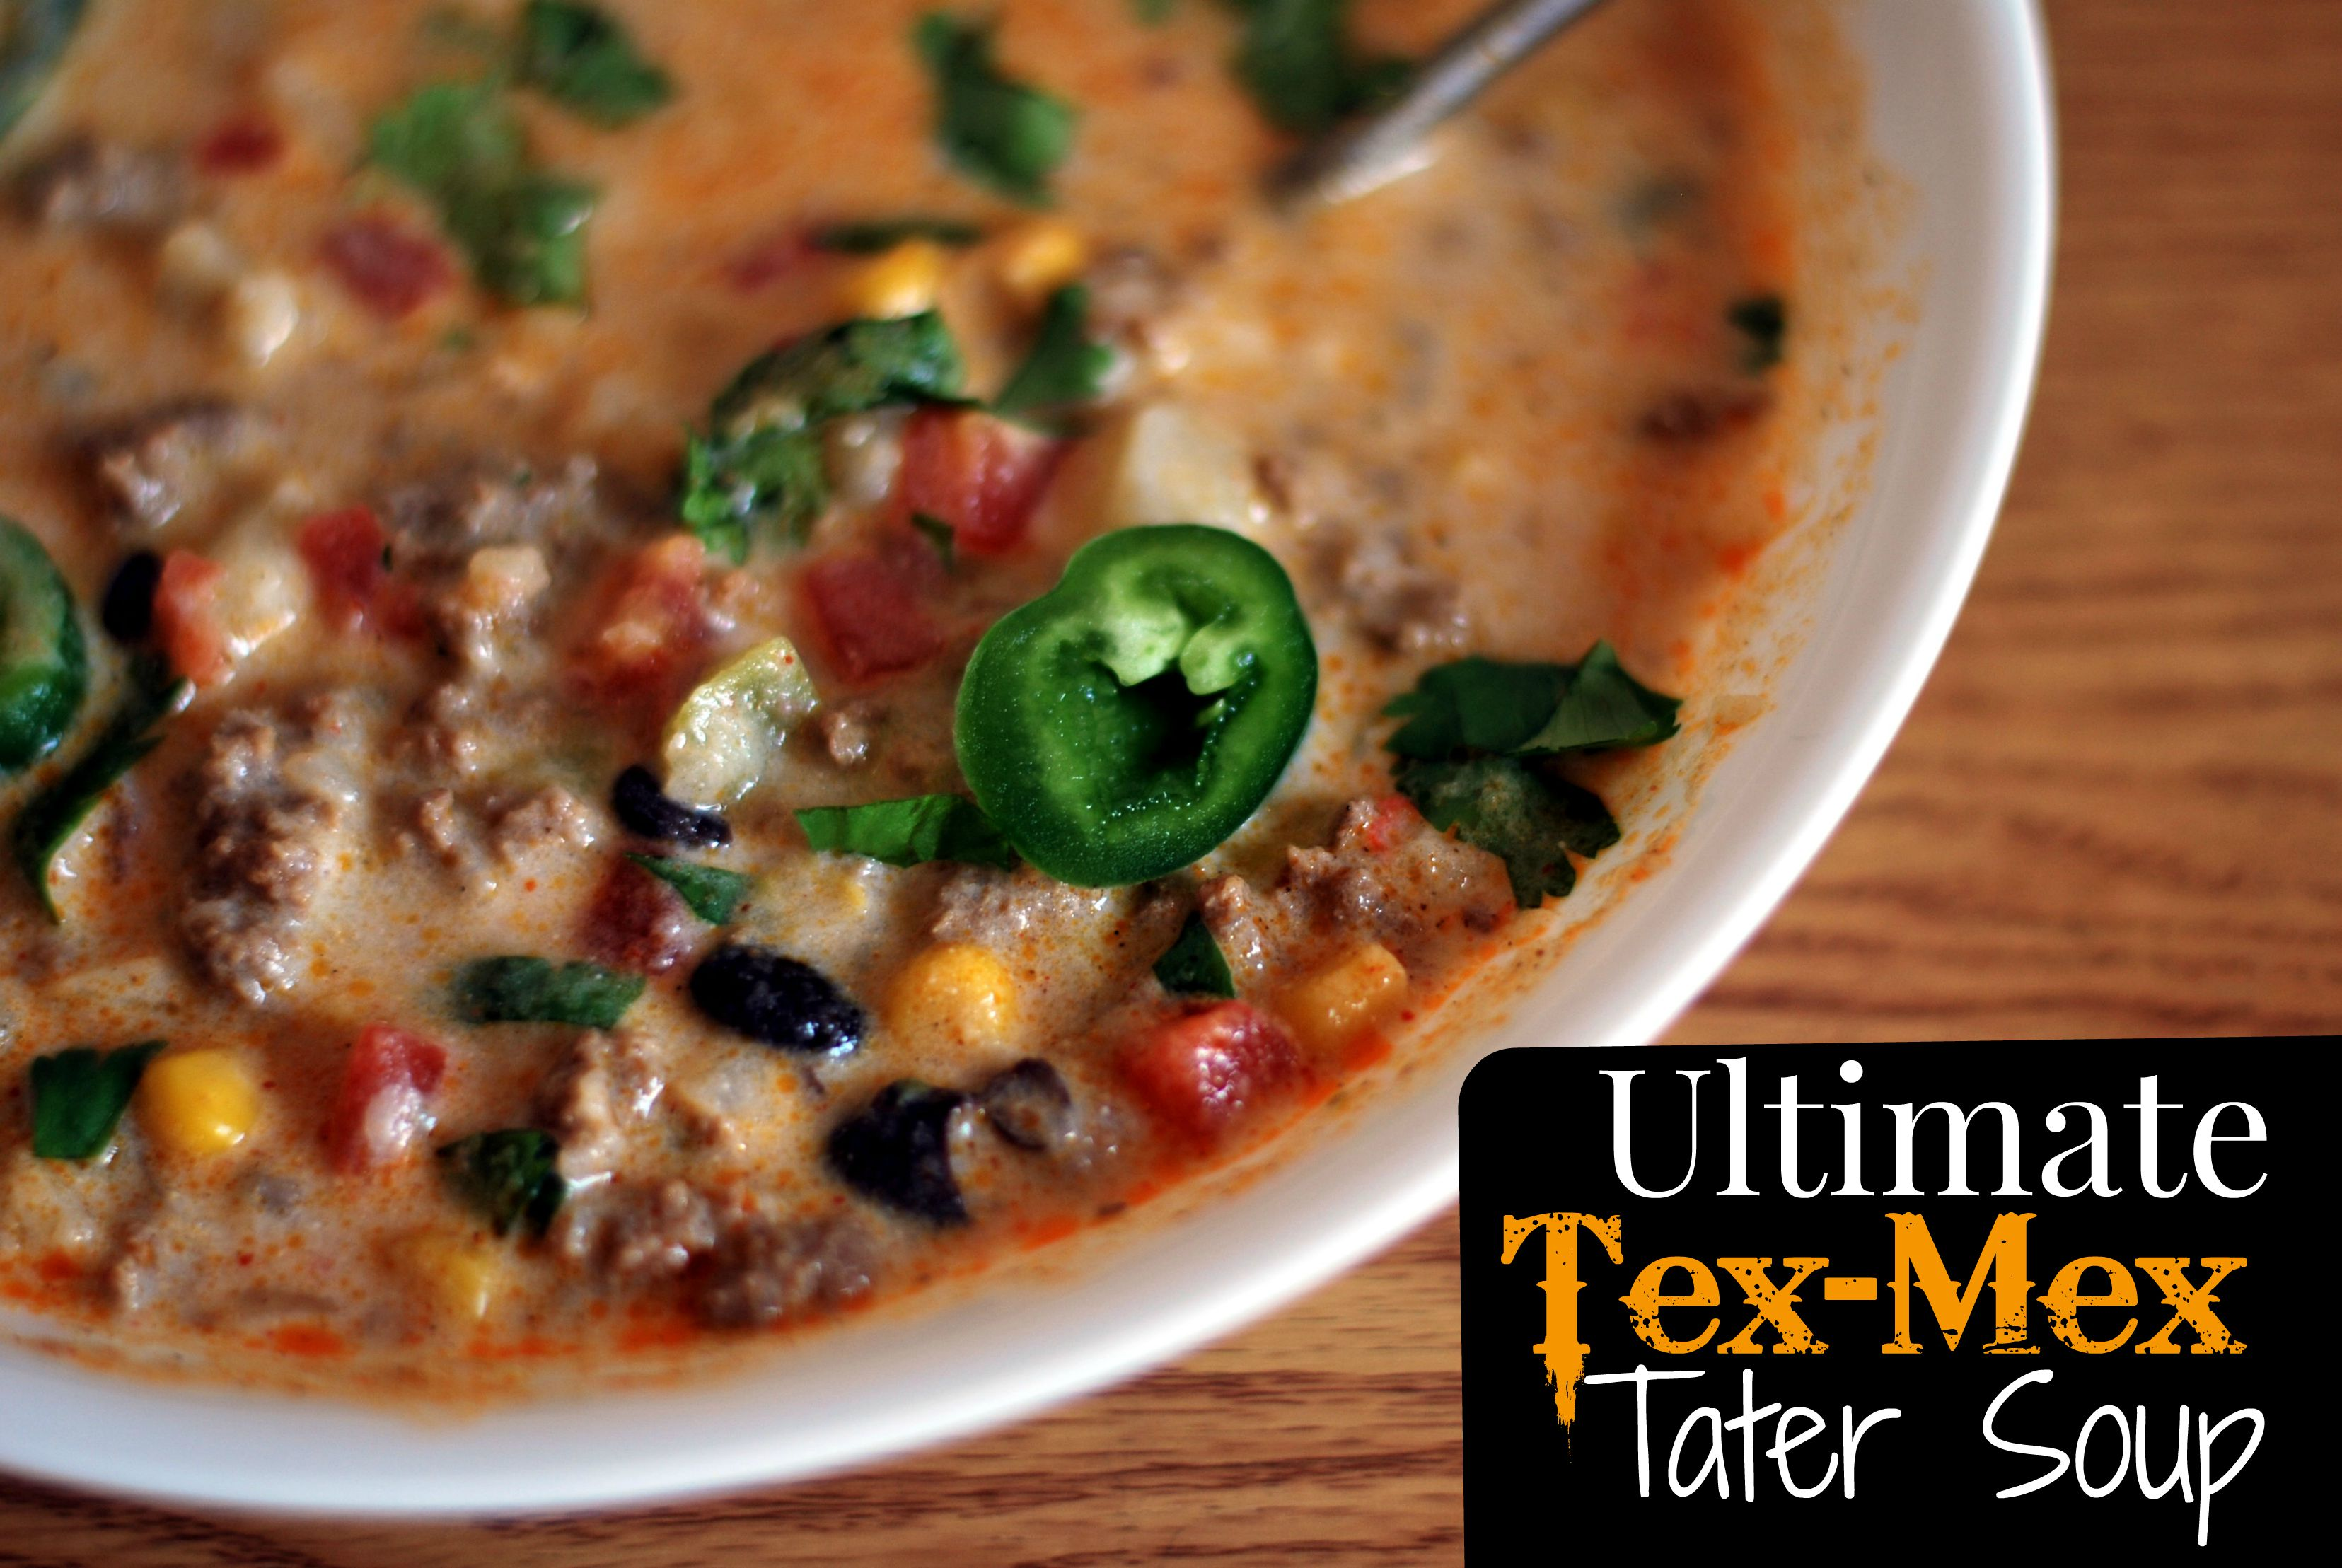 Ultimate} Tex-Mex Tater Soup - Aunt Bee's Recipes